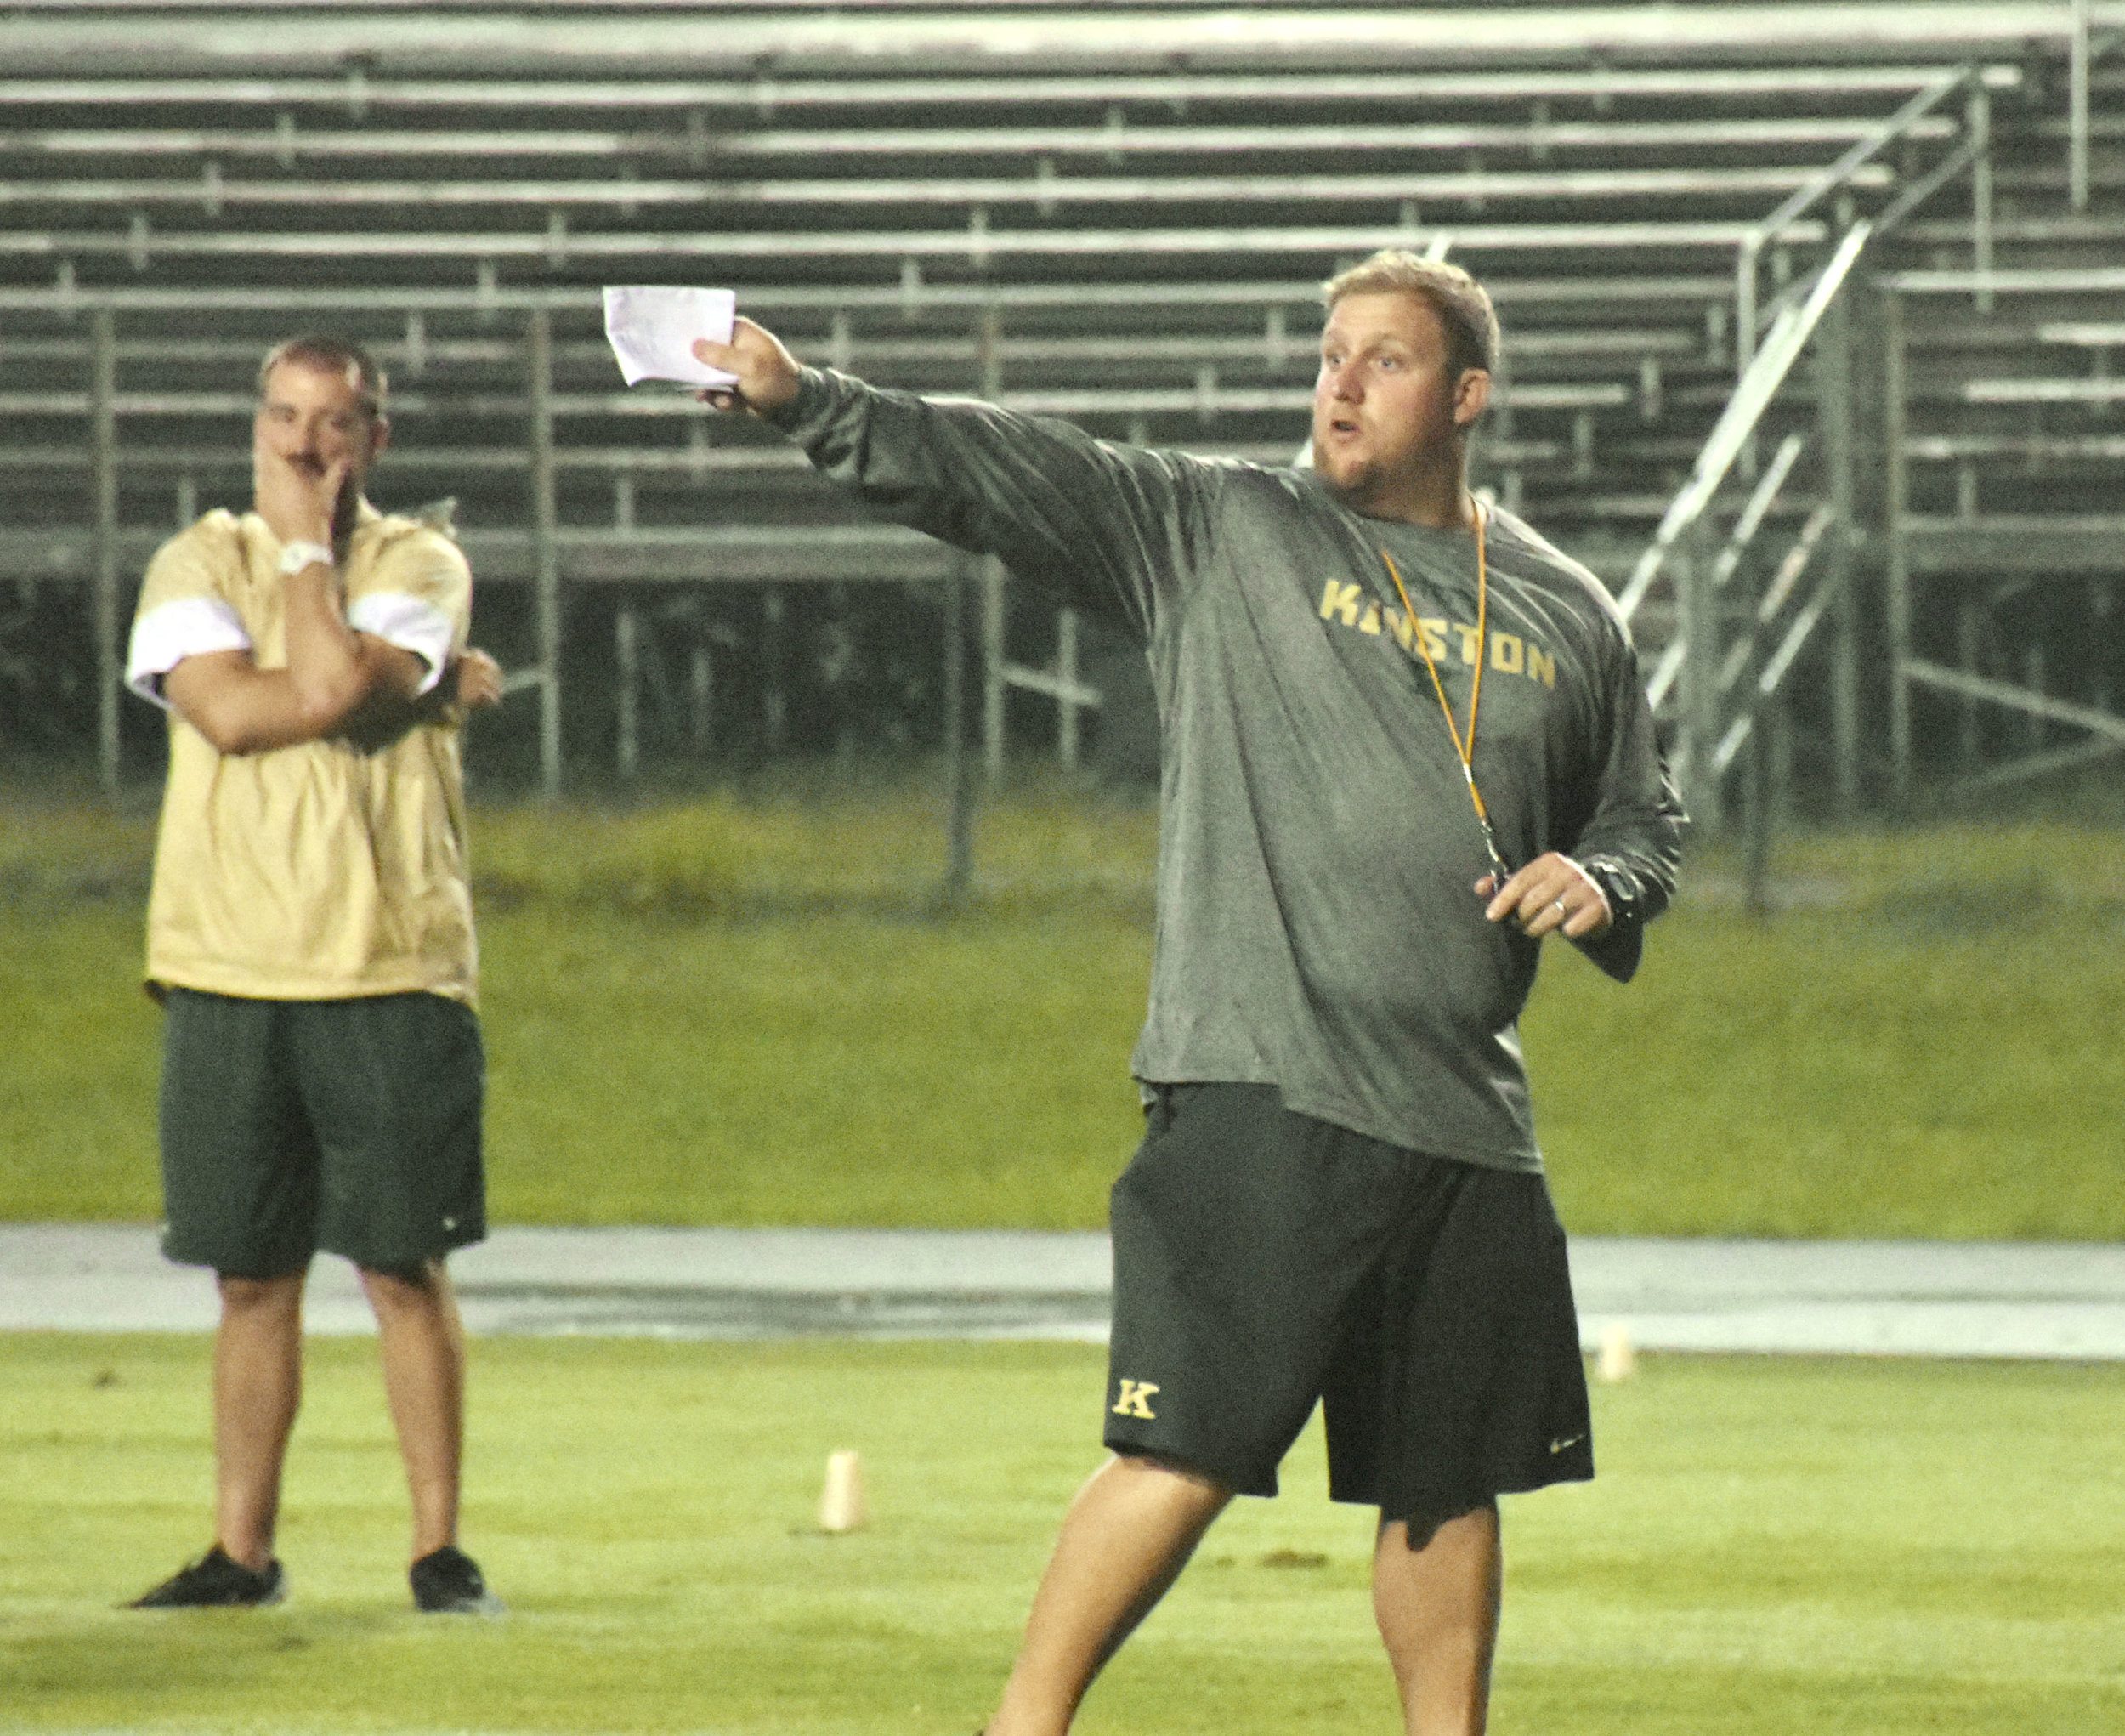 Kinston head coach Ryan Gieselman instructs his team. Photo by Bryan Hanks / Neuse News